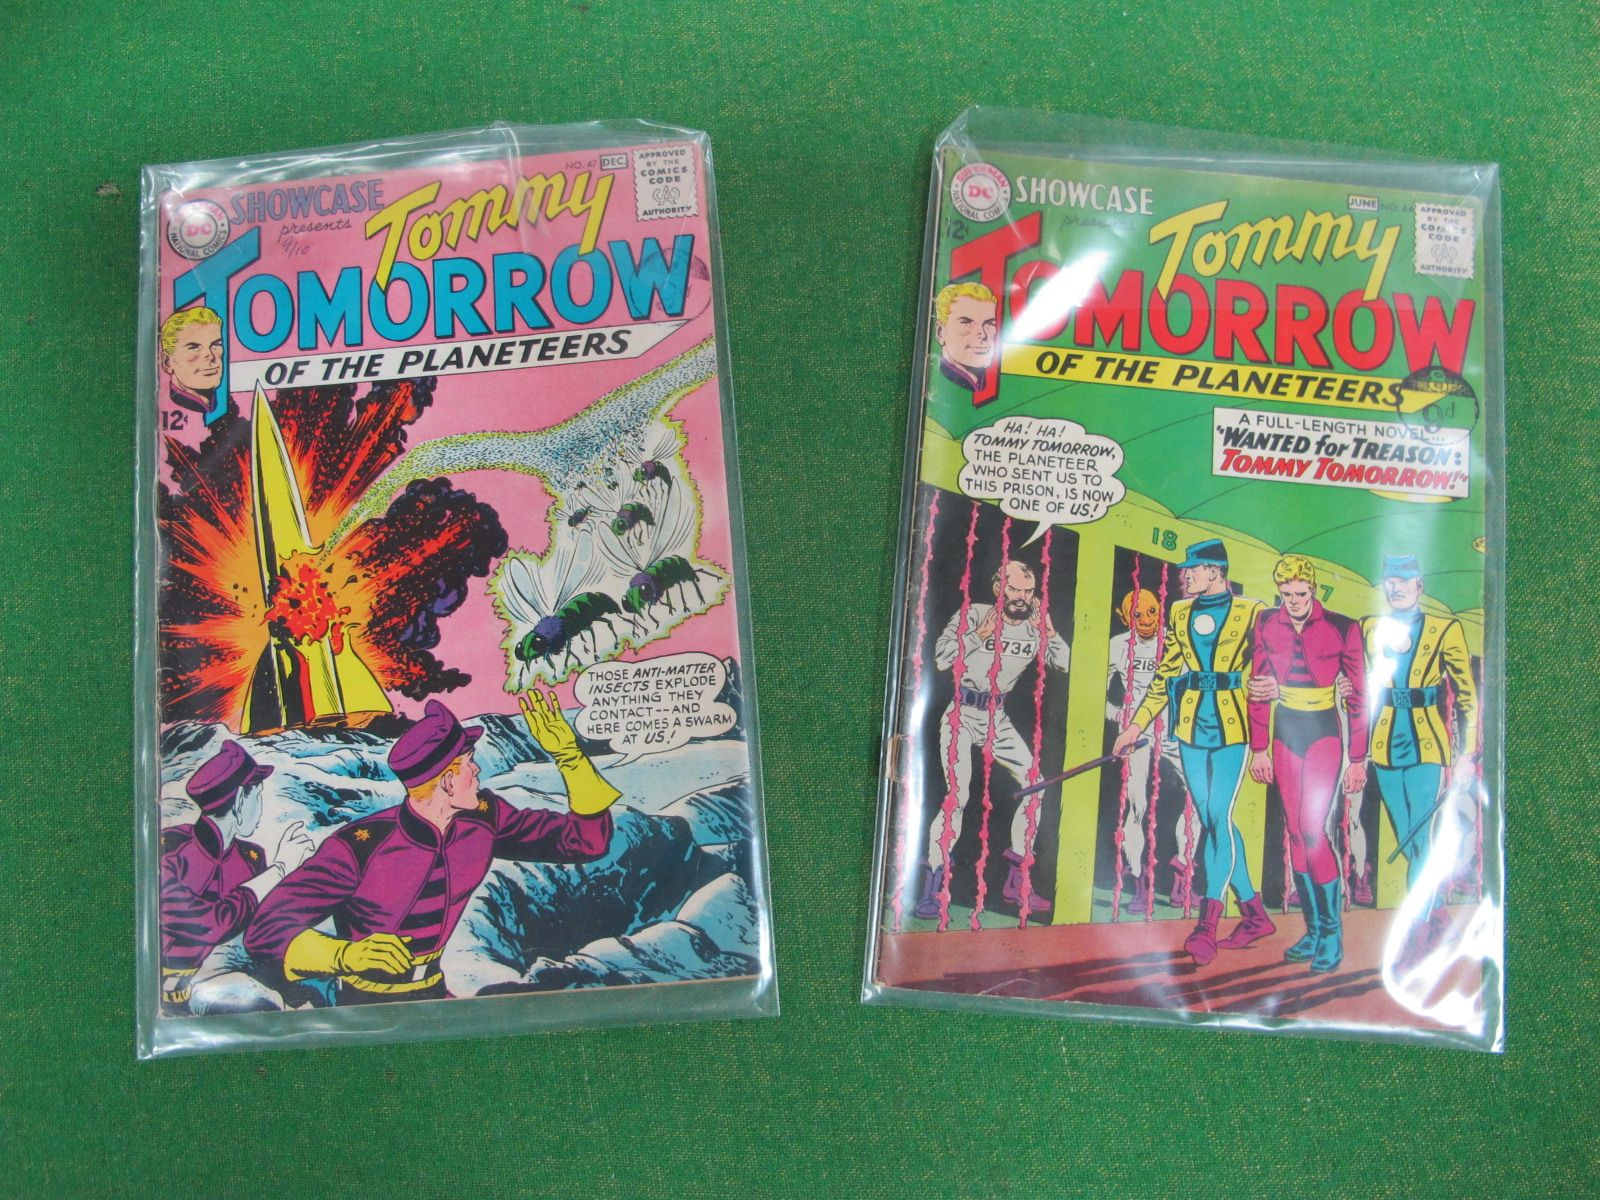 DC Showcase - Tommy Tomorrow 12C, 9d stamp, issues #44 and #47, both well used, well read